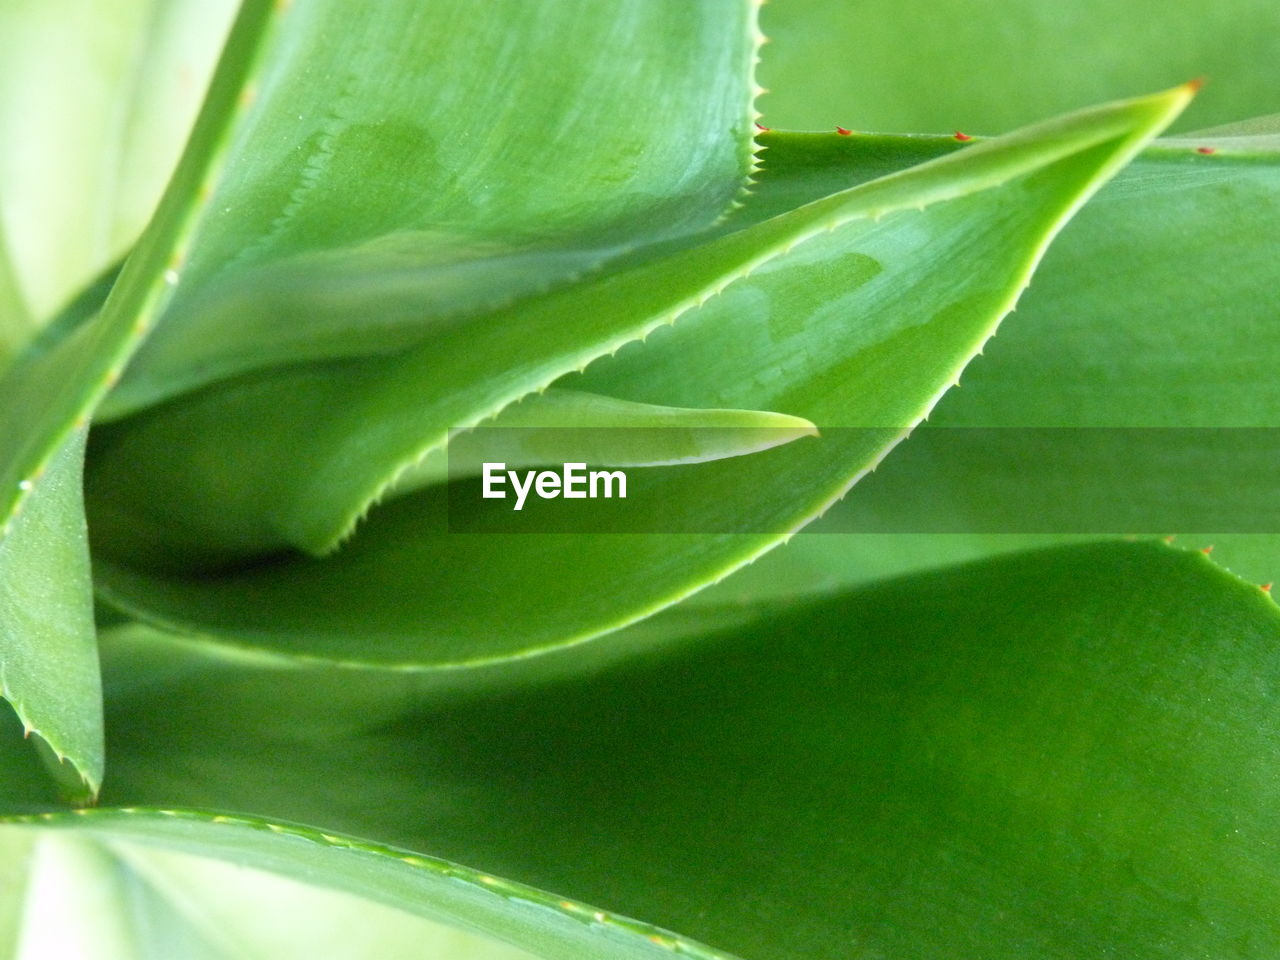 plant part, leaf, green color, plant, close-up, growth, no people, beauty in nature, nature, day, freshness, outdoors, selective focus, backgrounds, full frame, extreme close-up, fragility, focus on foreground, vulnerability, natural pattern, leaves